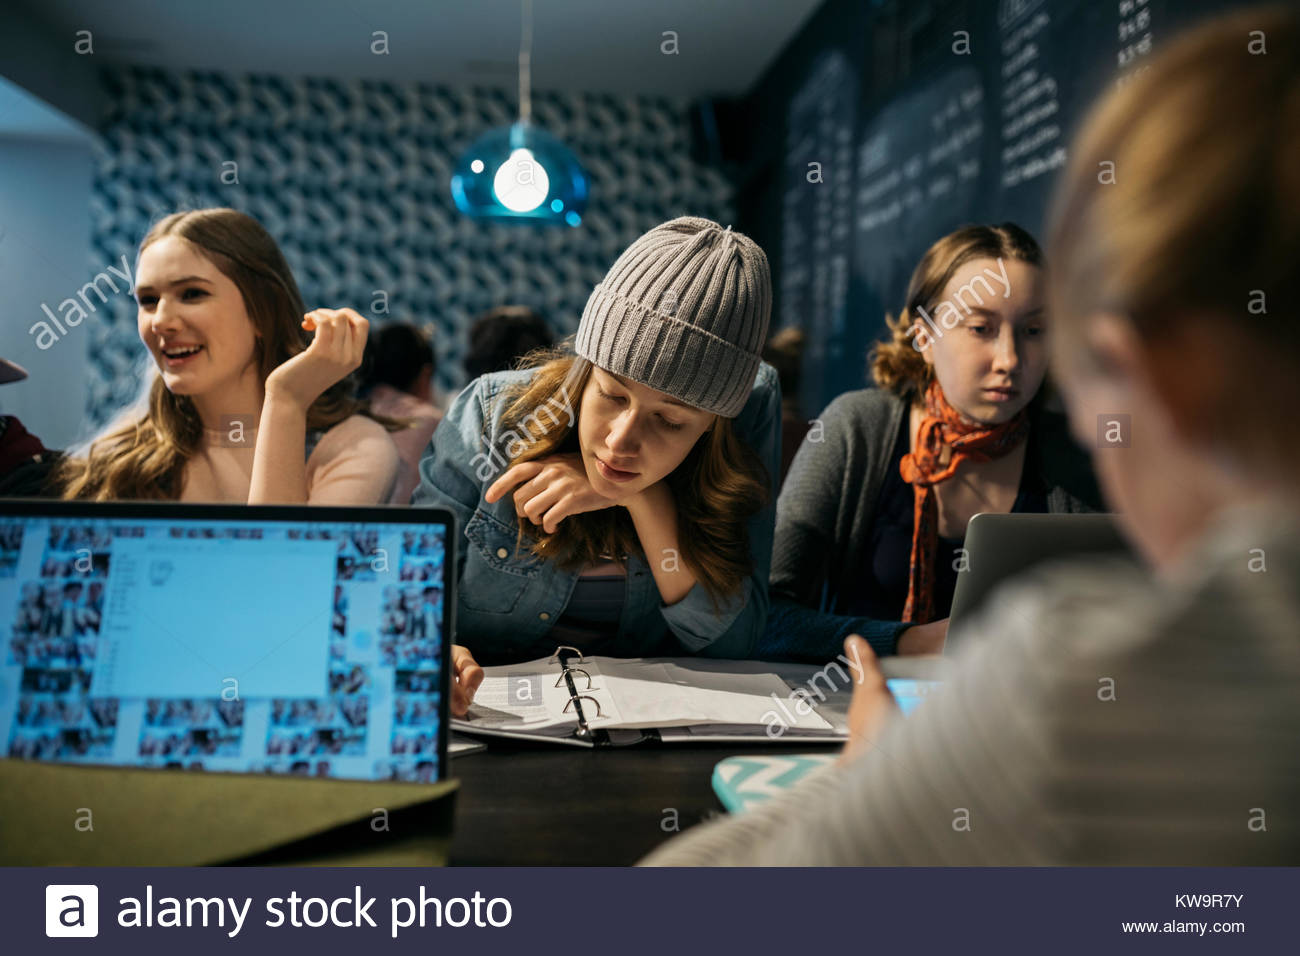 Girl high school students studying in cafe Photo Stock